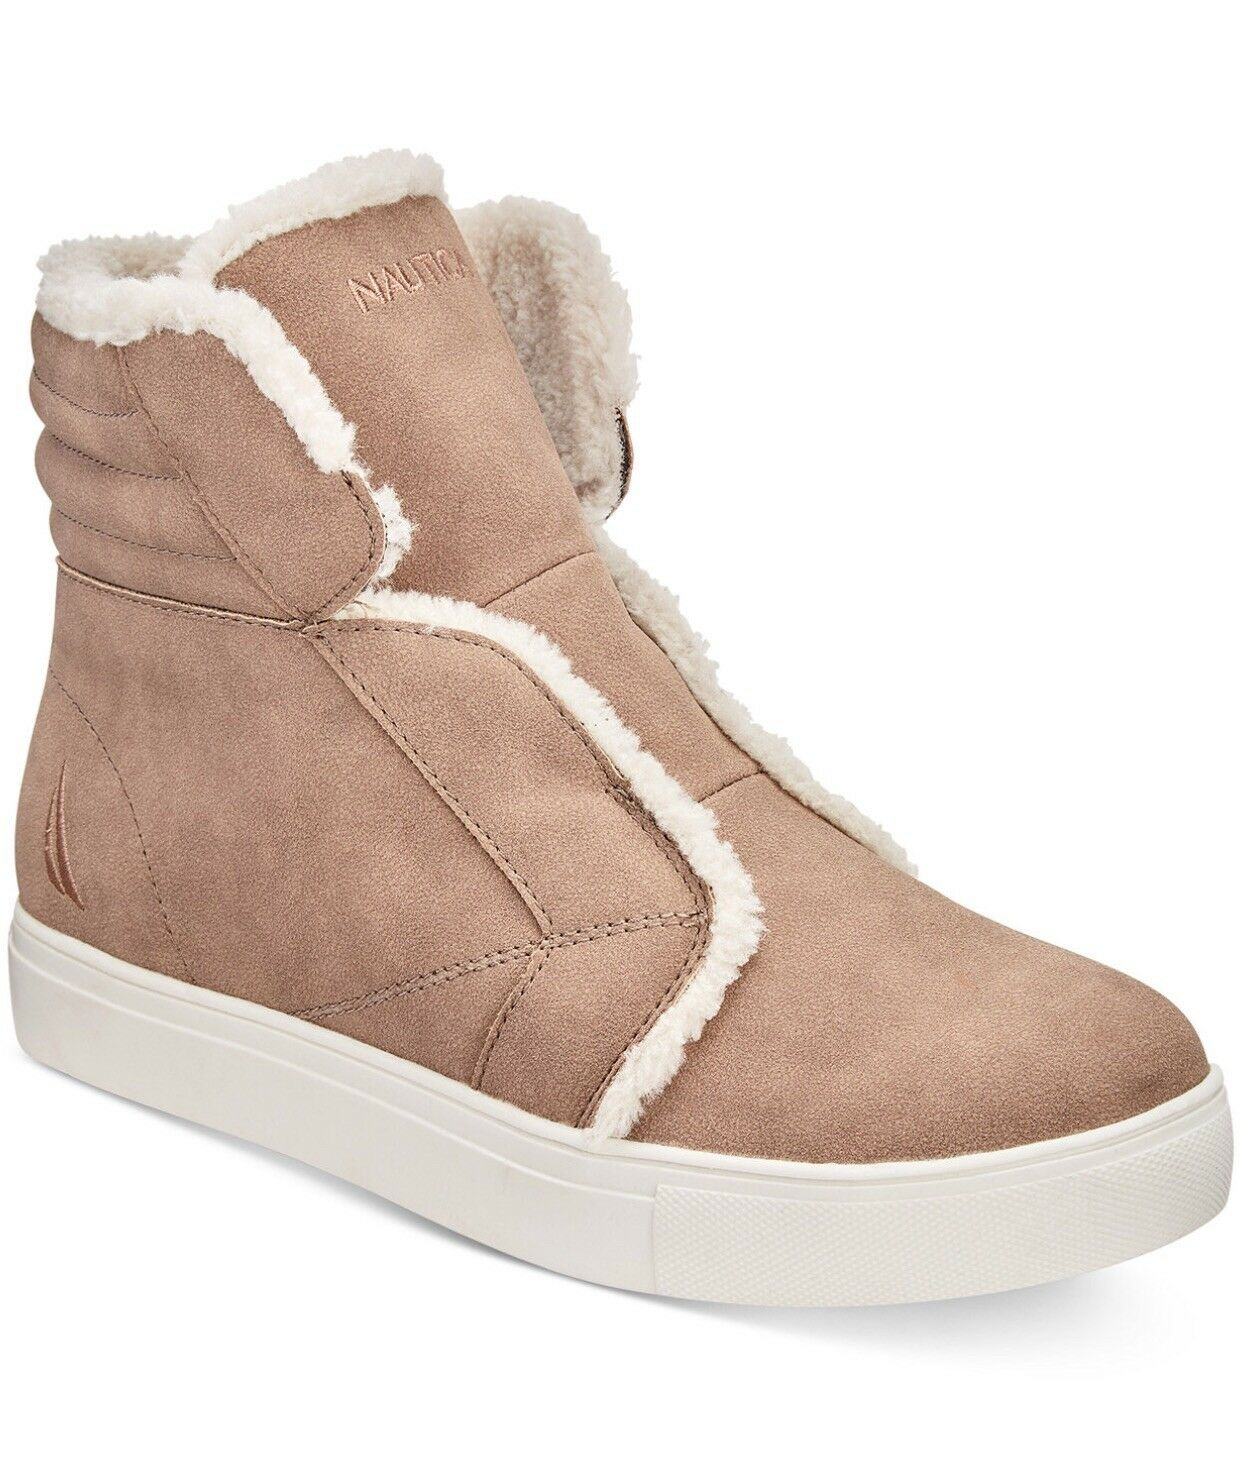 Nautica Kellen High Top Sneakers Fall Winter Warm Booties, Camel Tan Beige 9